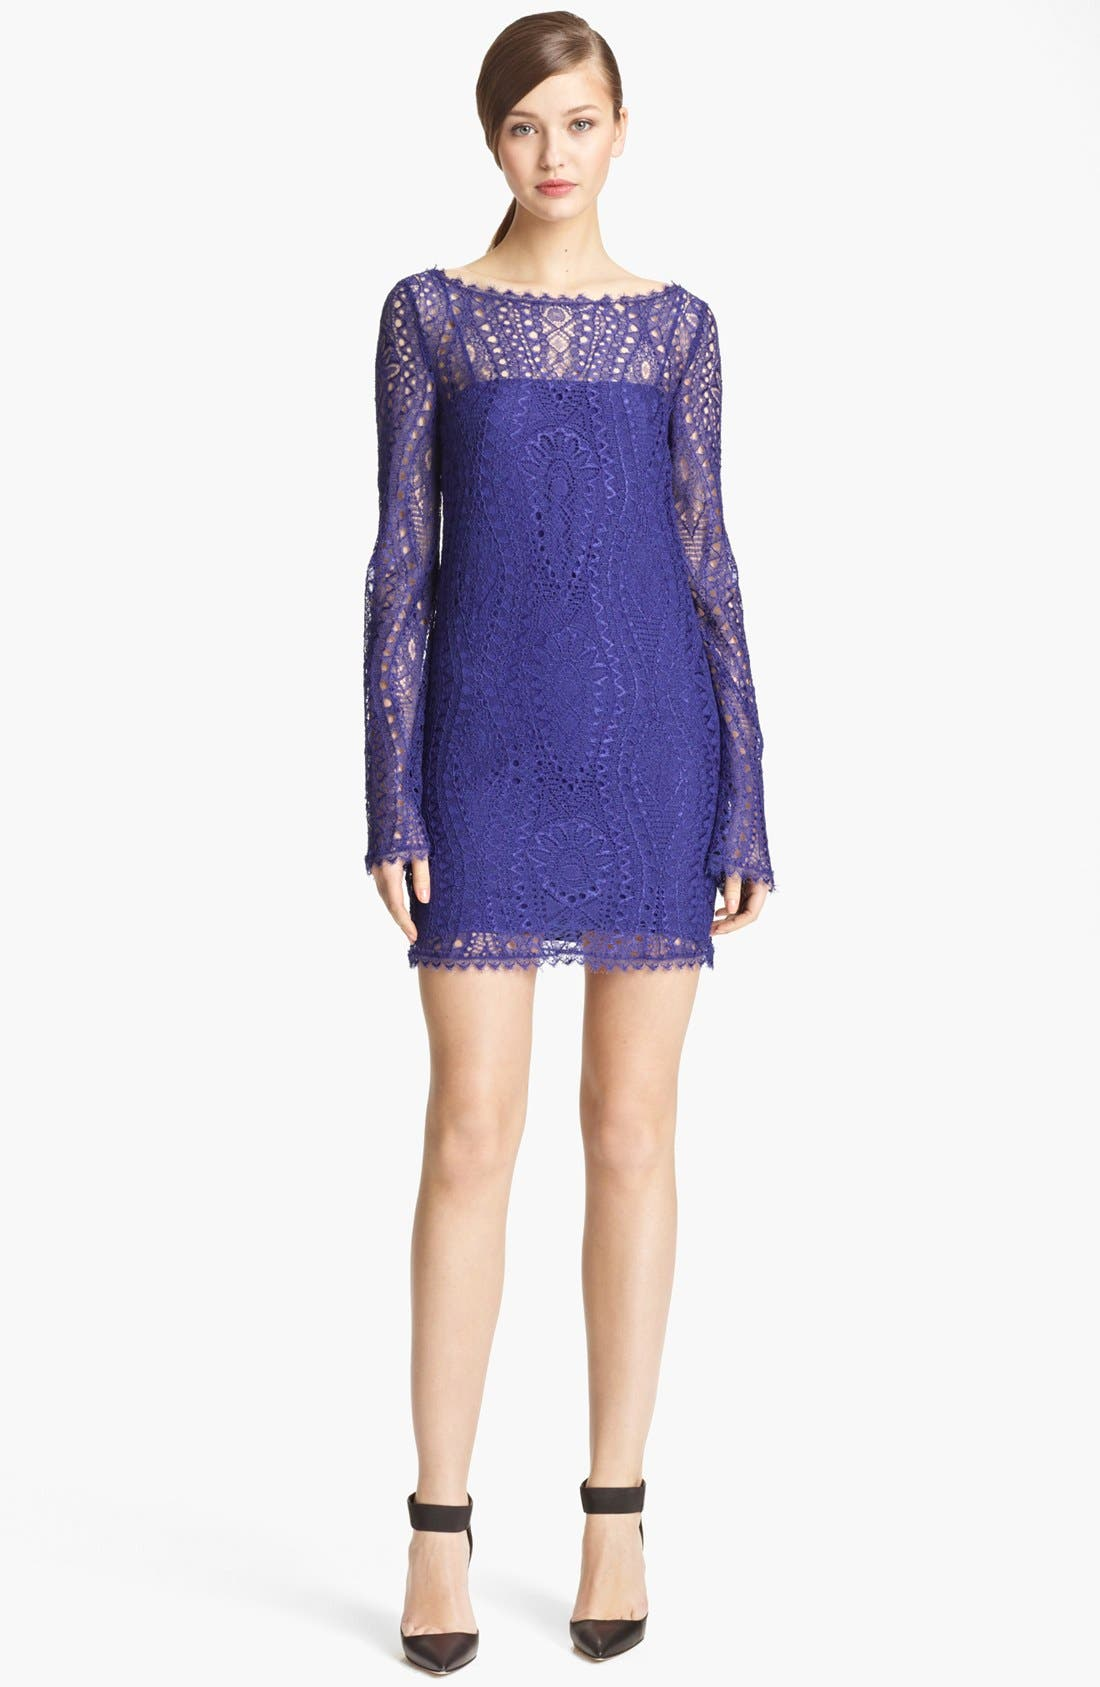 Alternate Image 1 Selected - Emilio Pucci Guipure Lace Dress